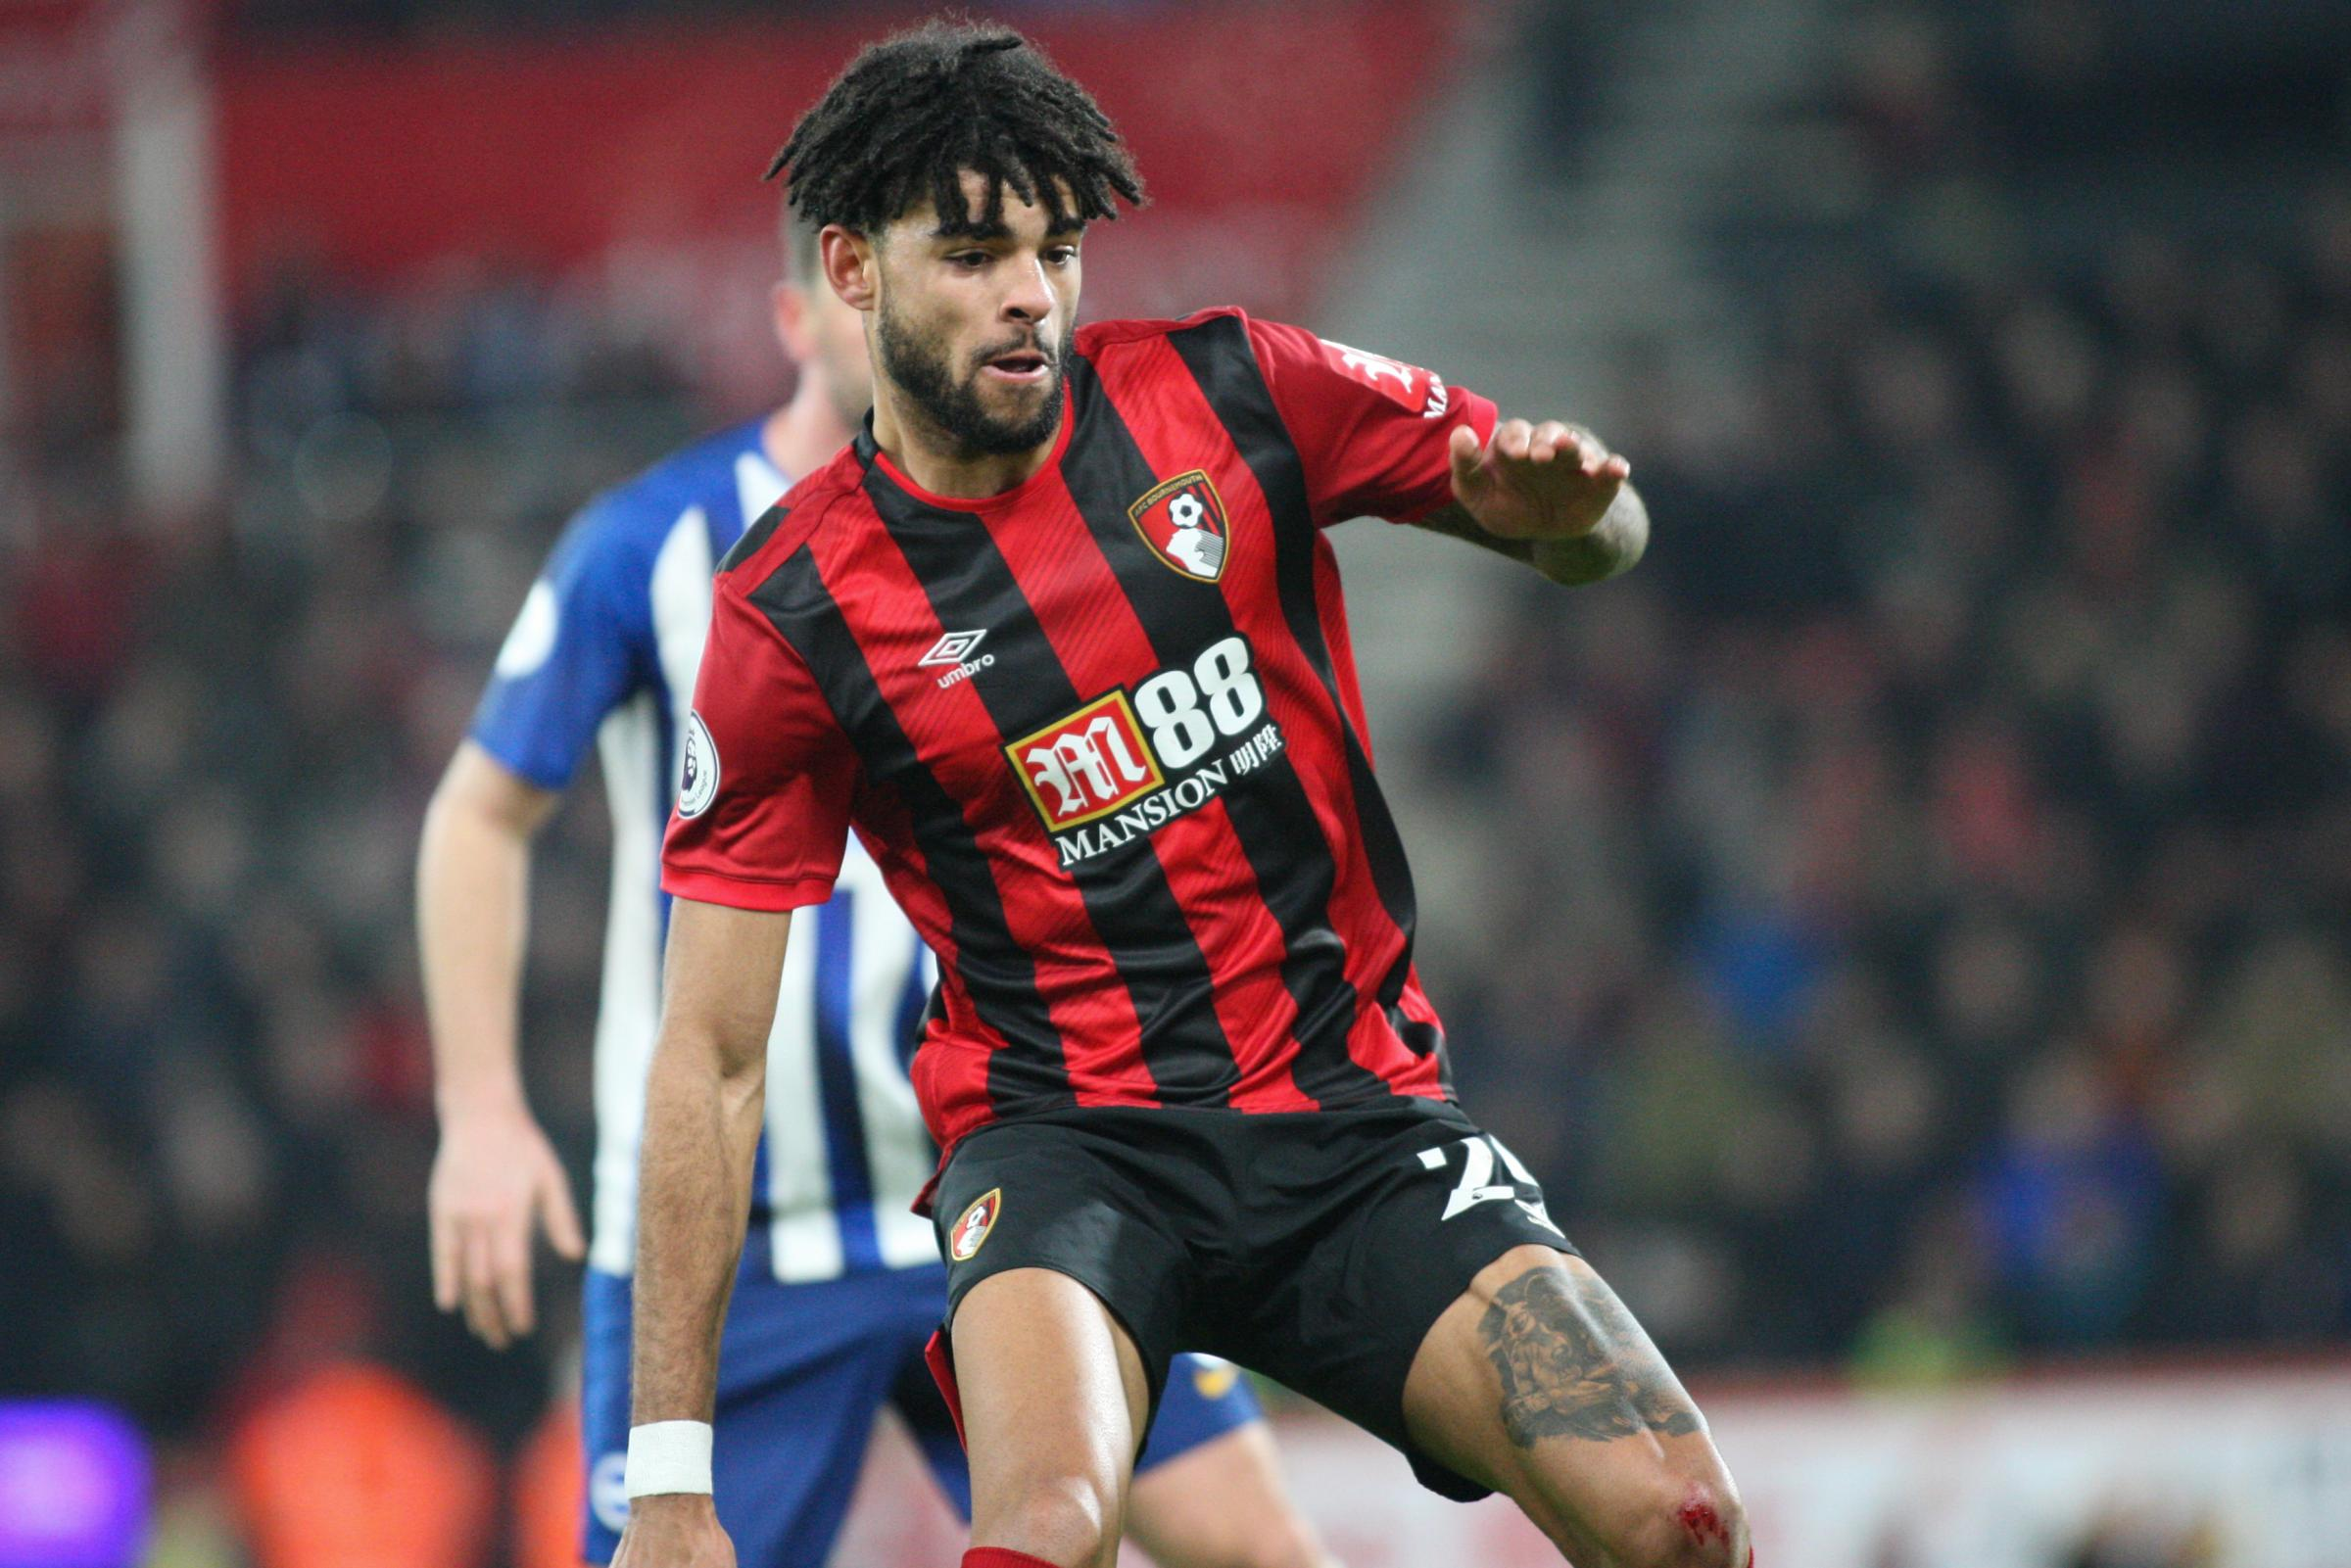 'No chance am I getting two relegations in a row' - Confident Philip Billing insists AFC Bournemouth are 'looking up the table' after beating Brighton